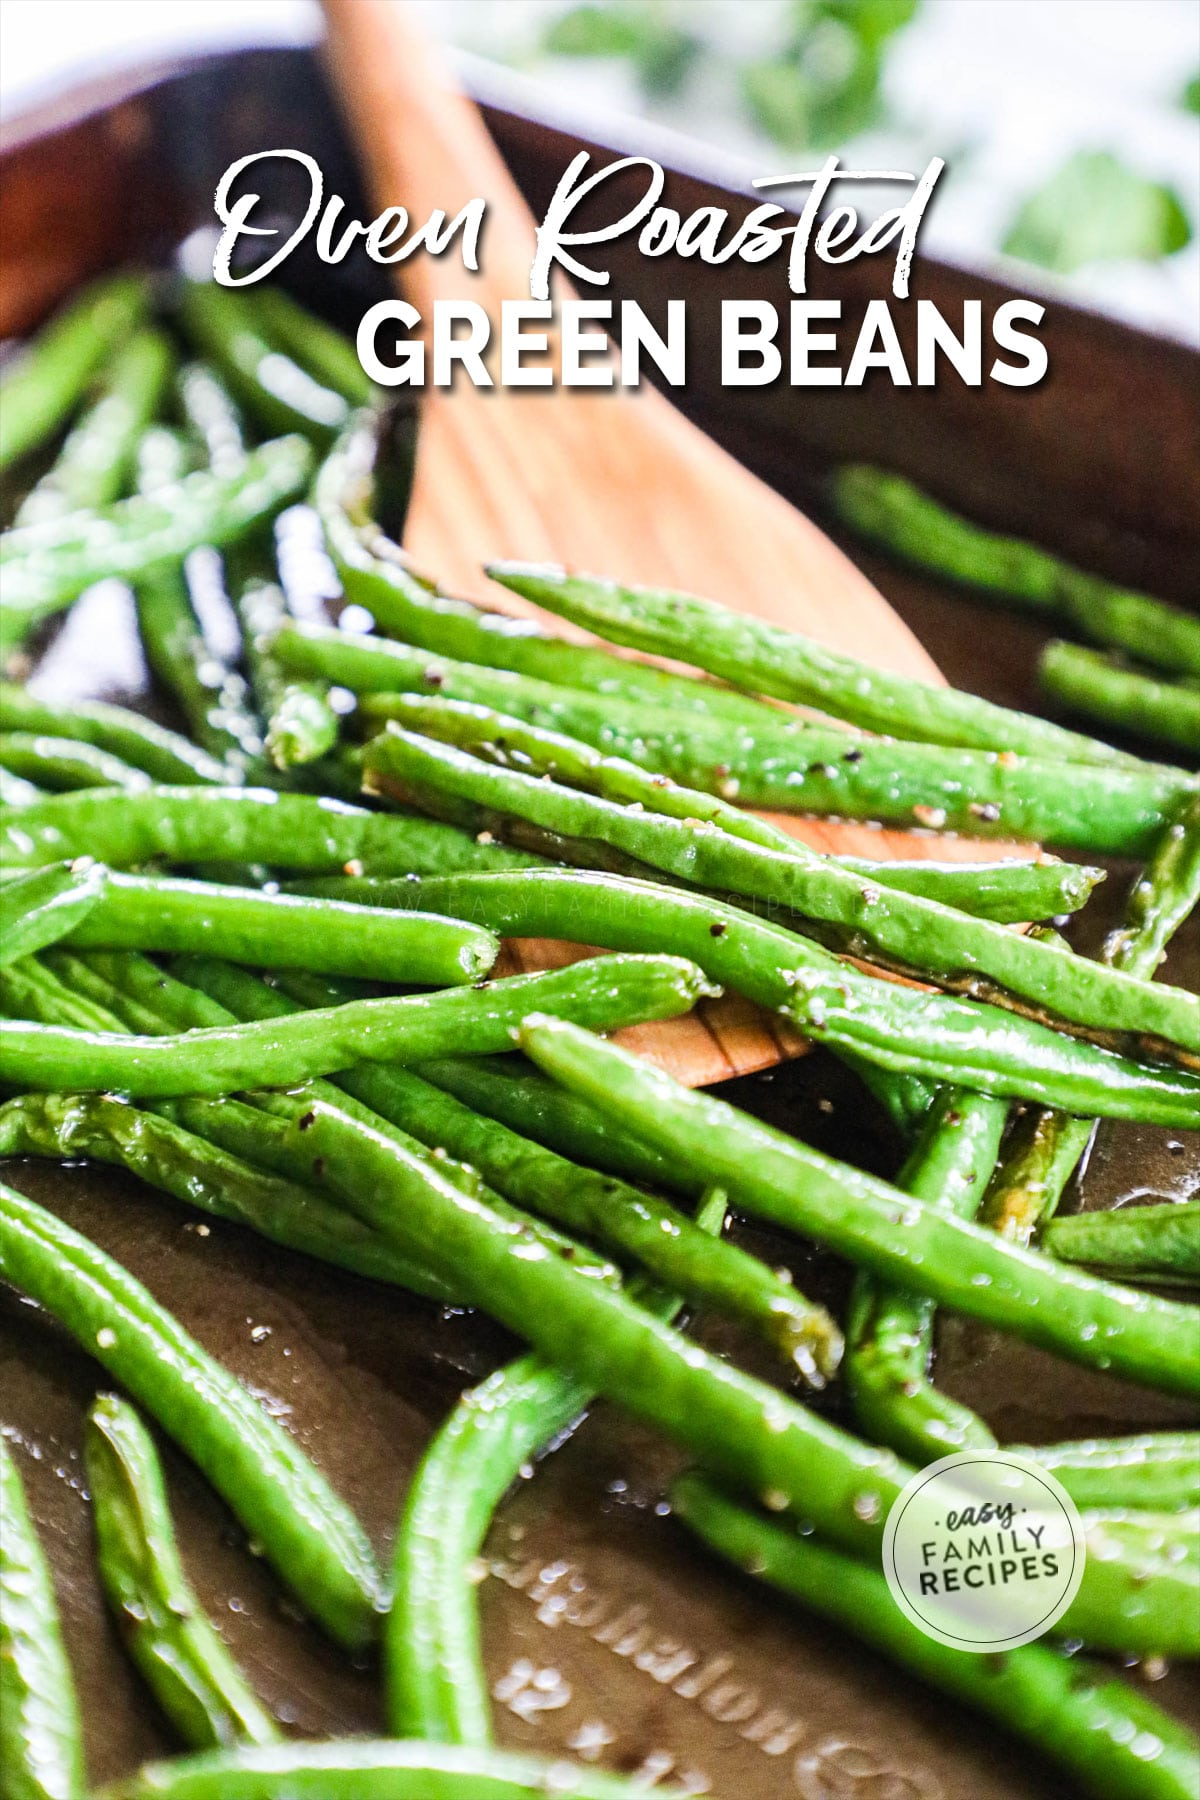 Roasted Green Beans on a baking sheet